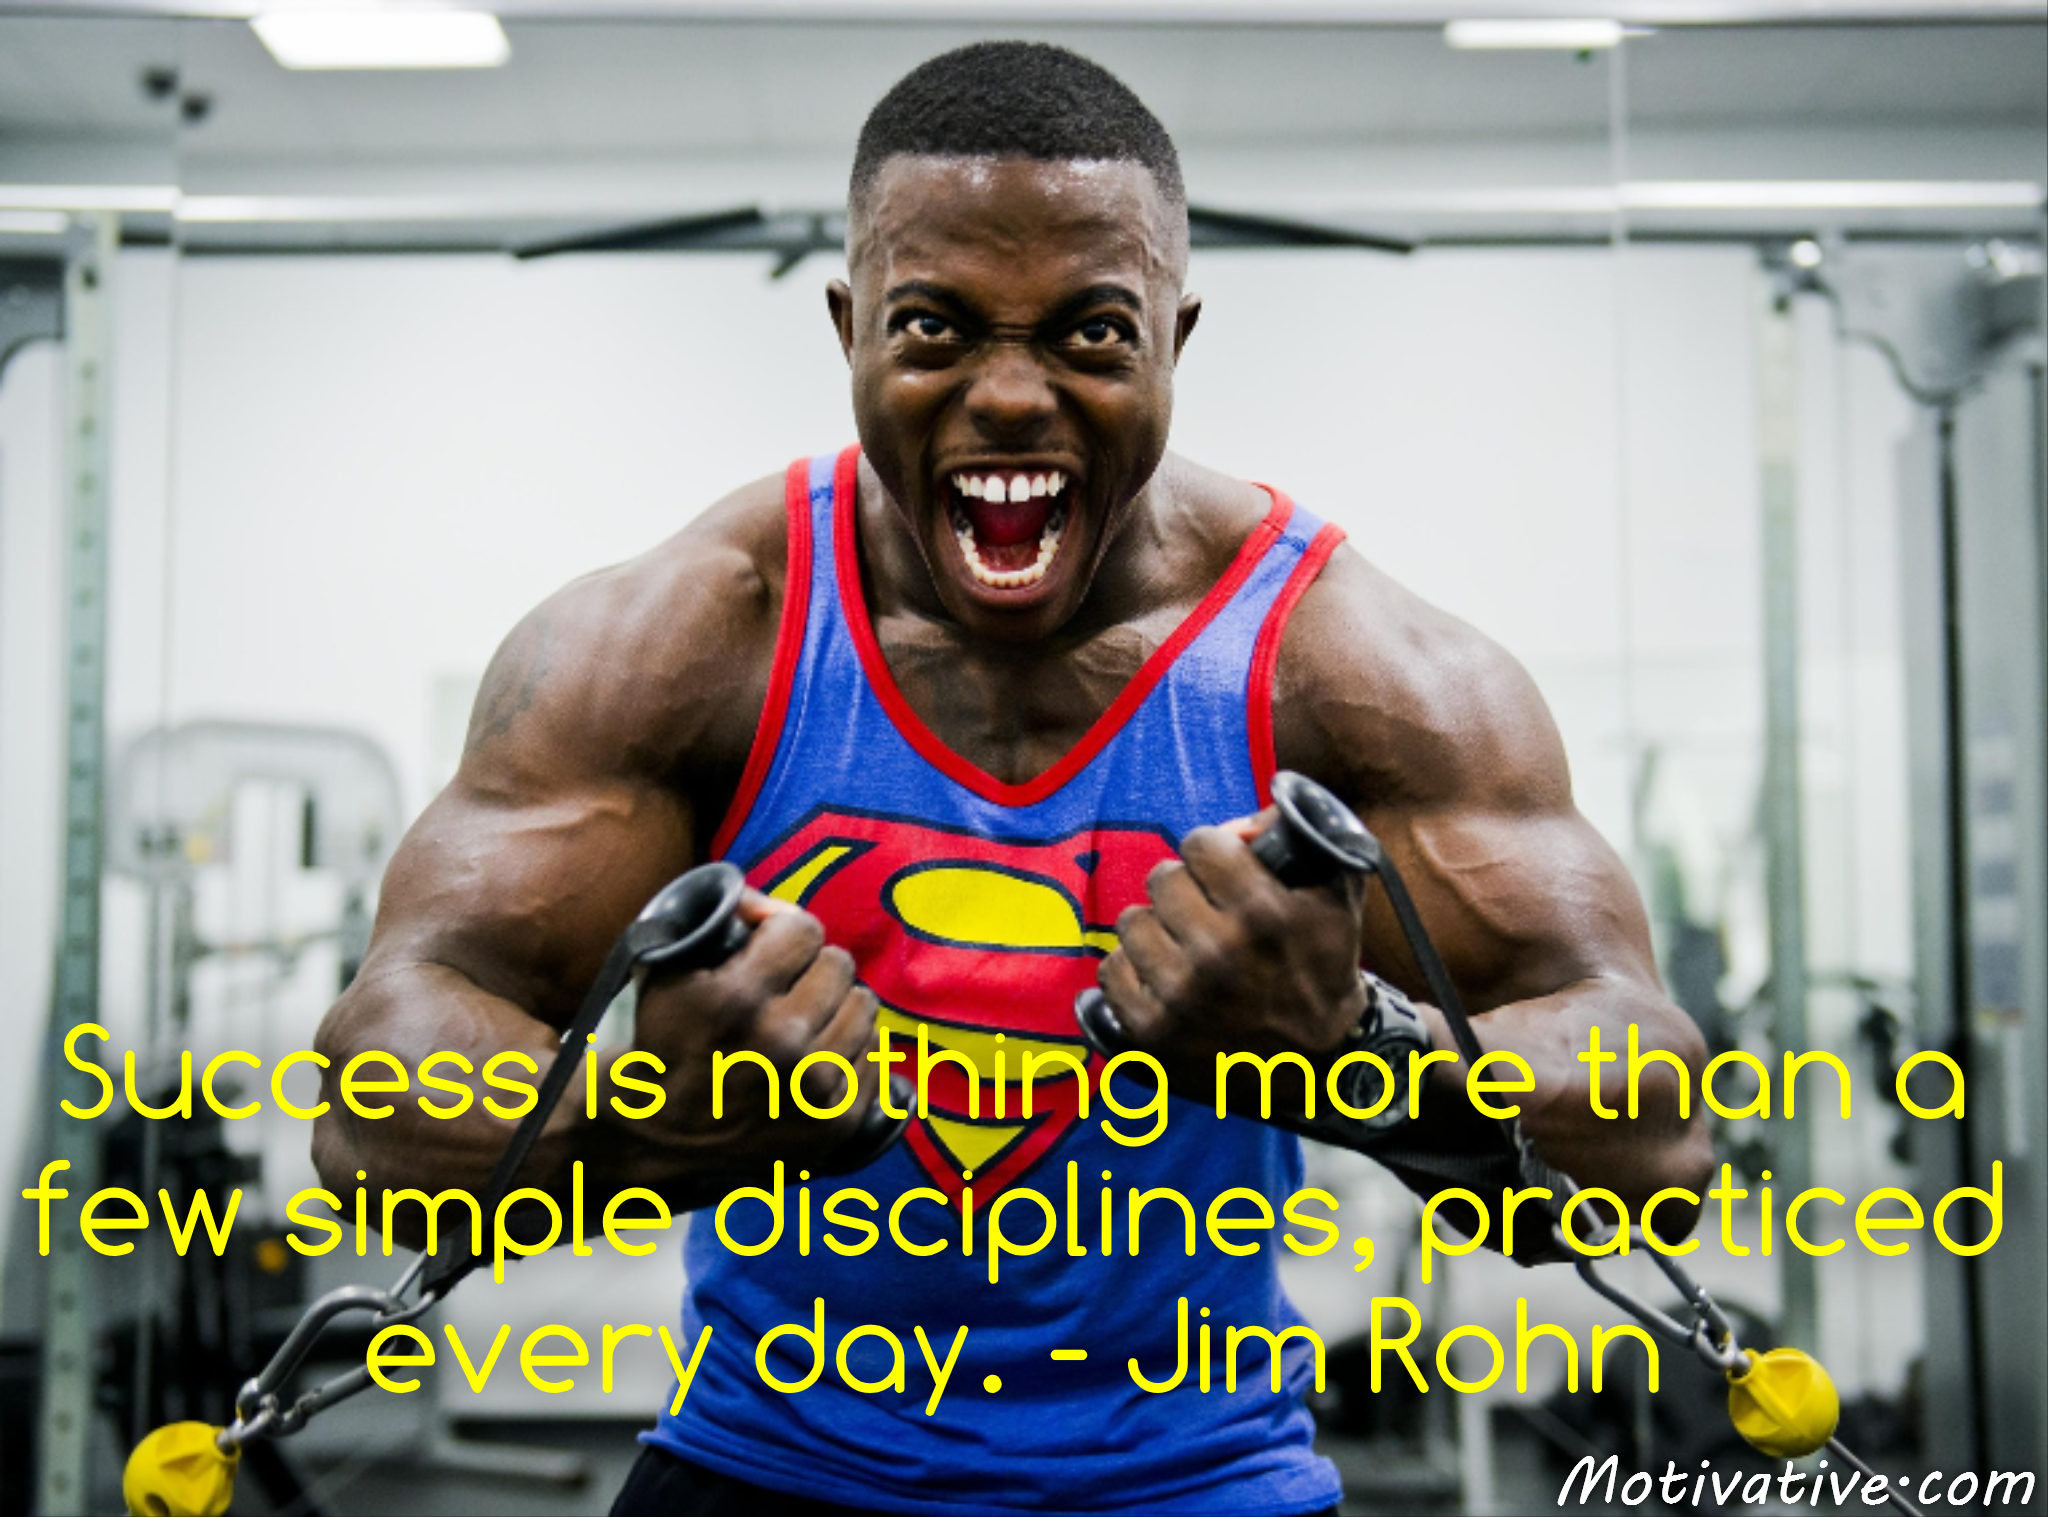 Success is nothing more than a few simple disciplines, practiced every day. – Jim Rohn